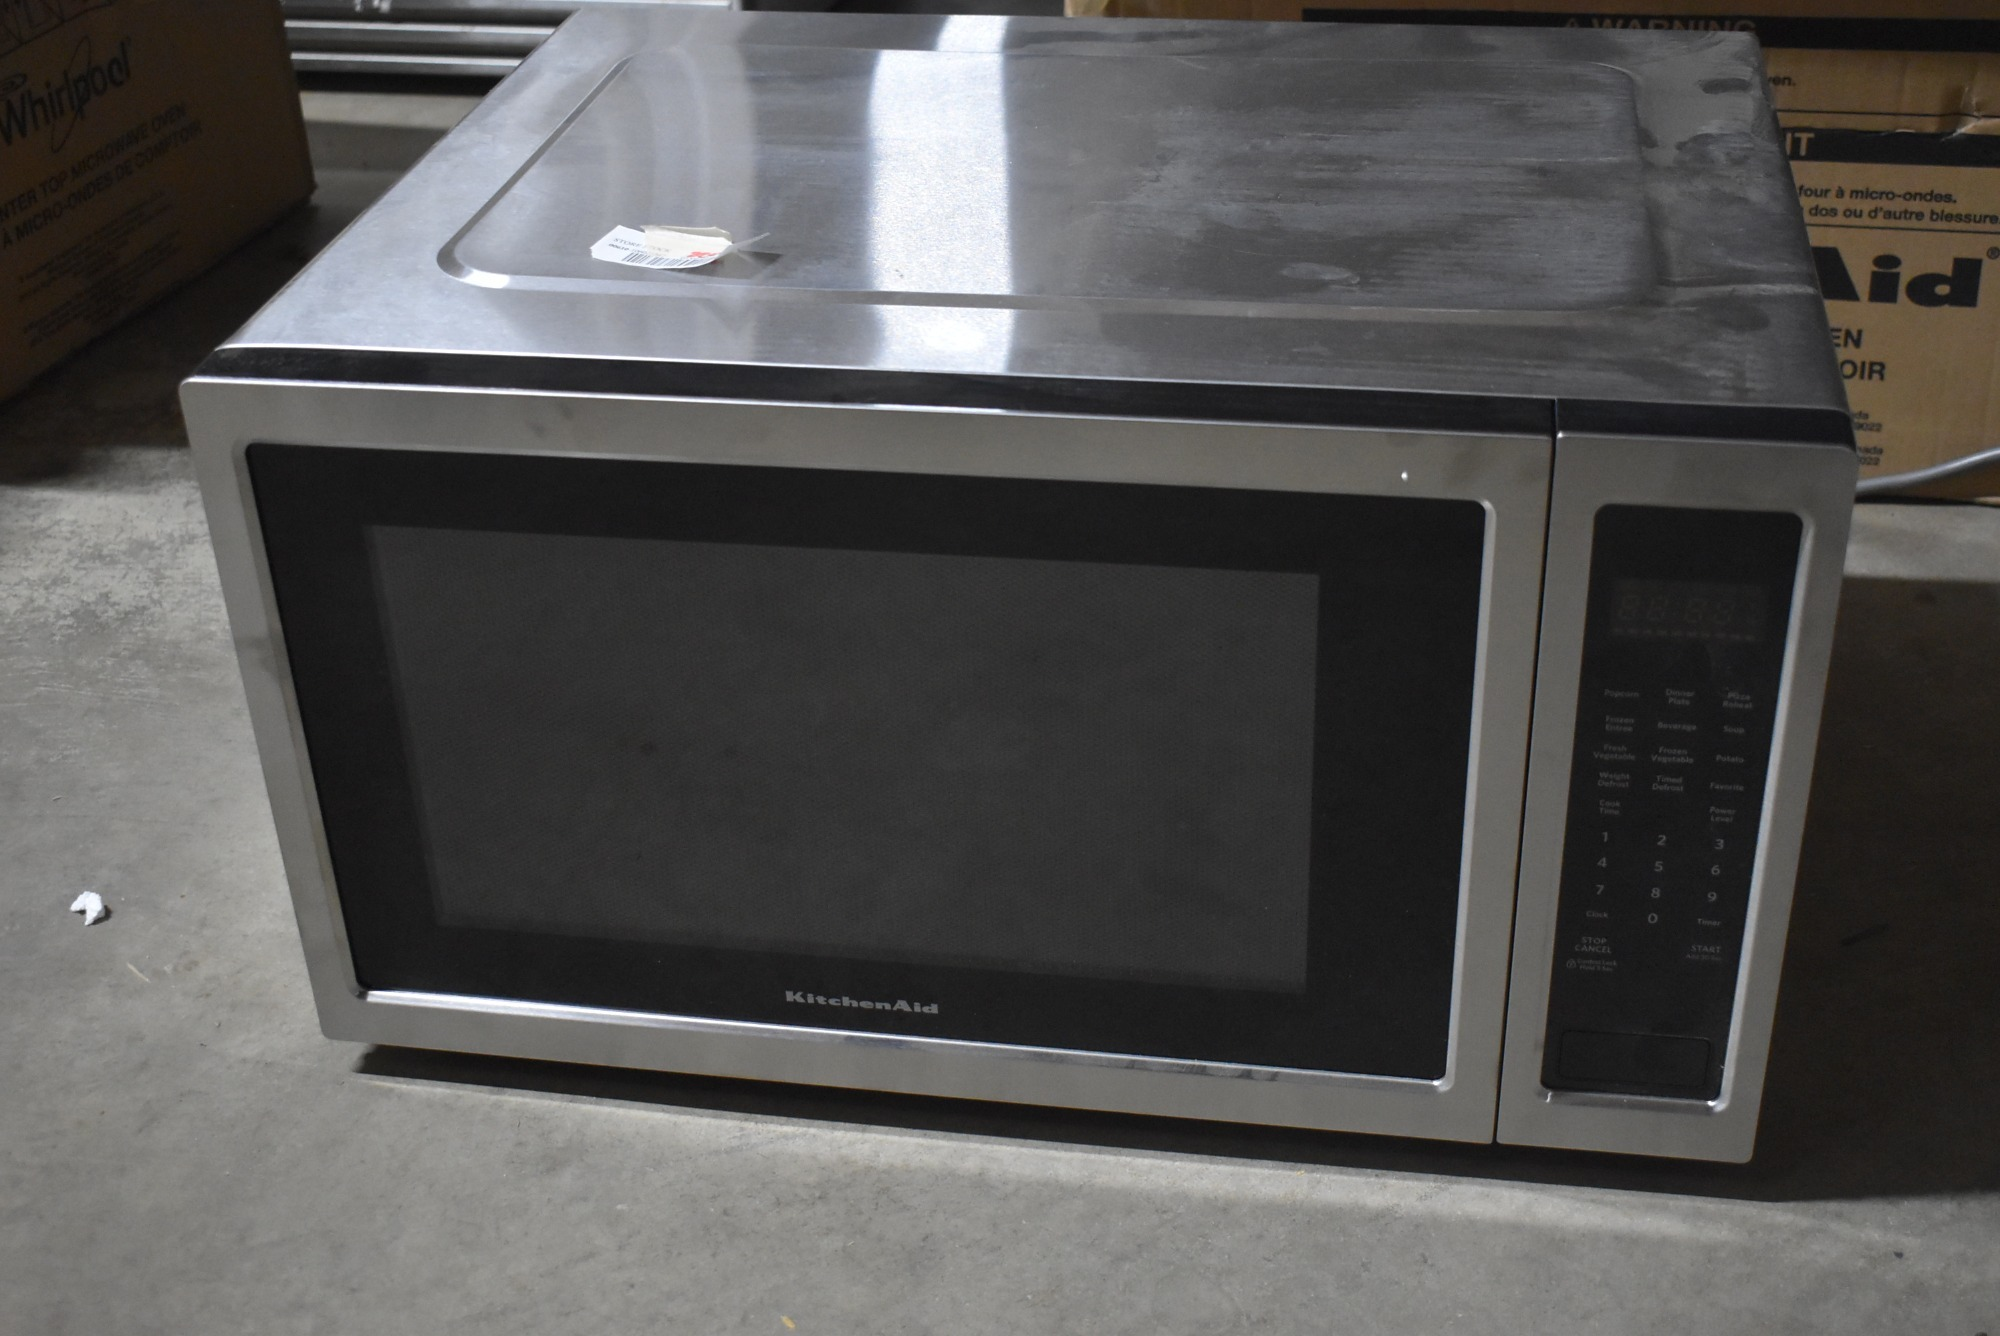 KitchenAid Microwave 22